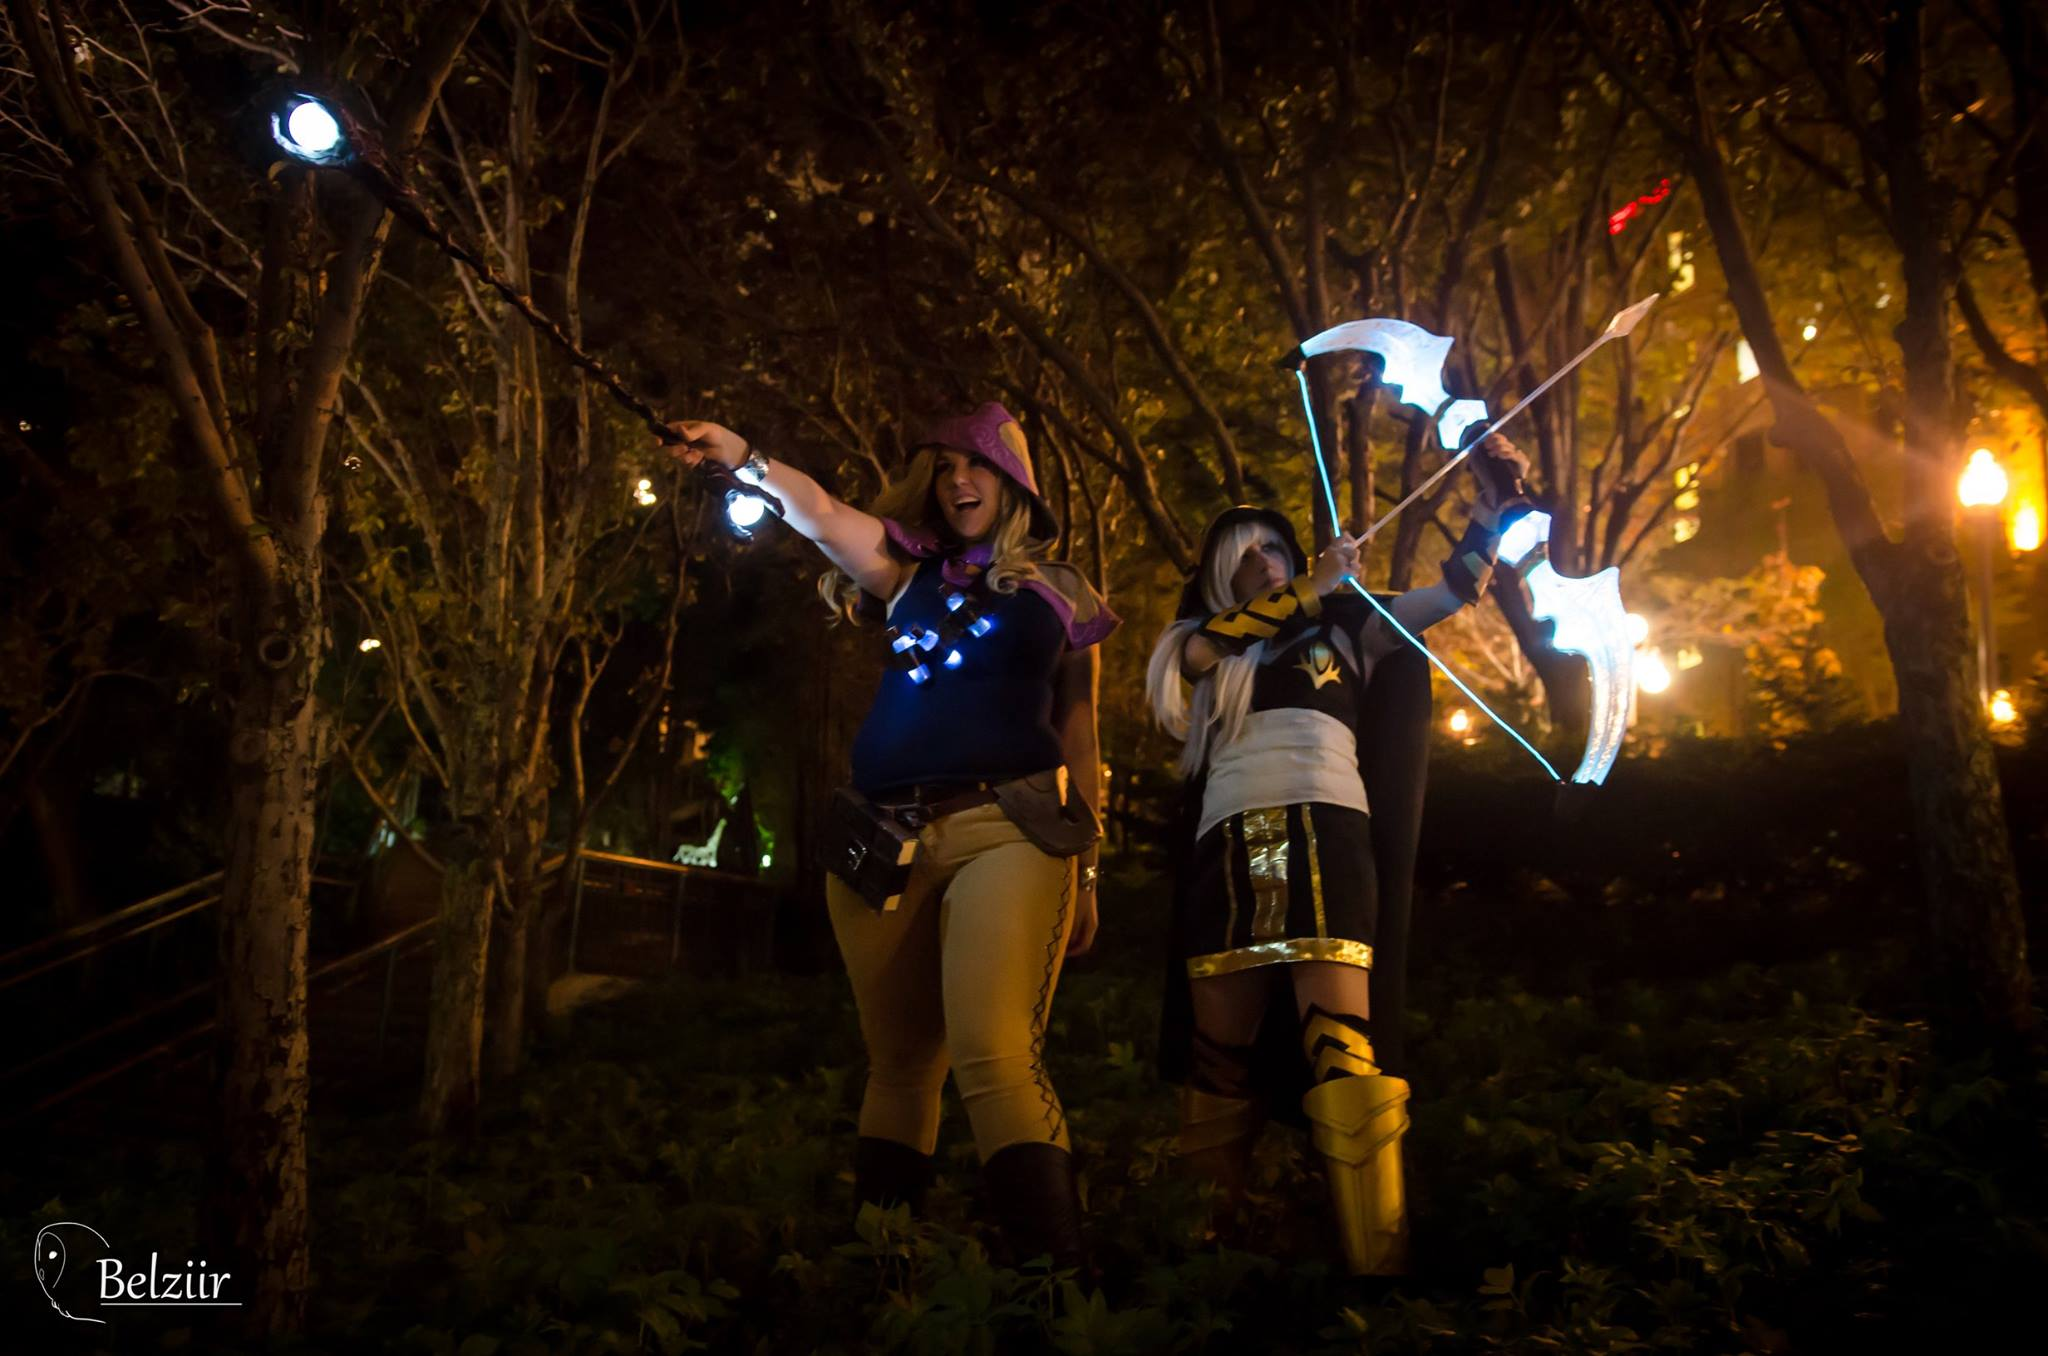 Ashe Cosplay bow - Arc lumineux